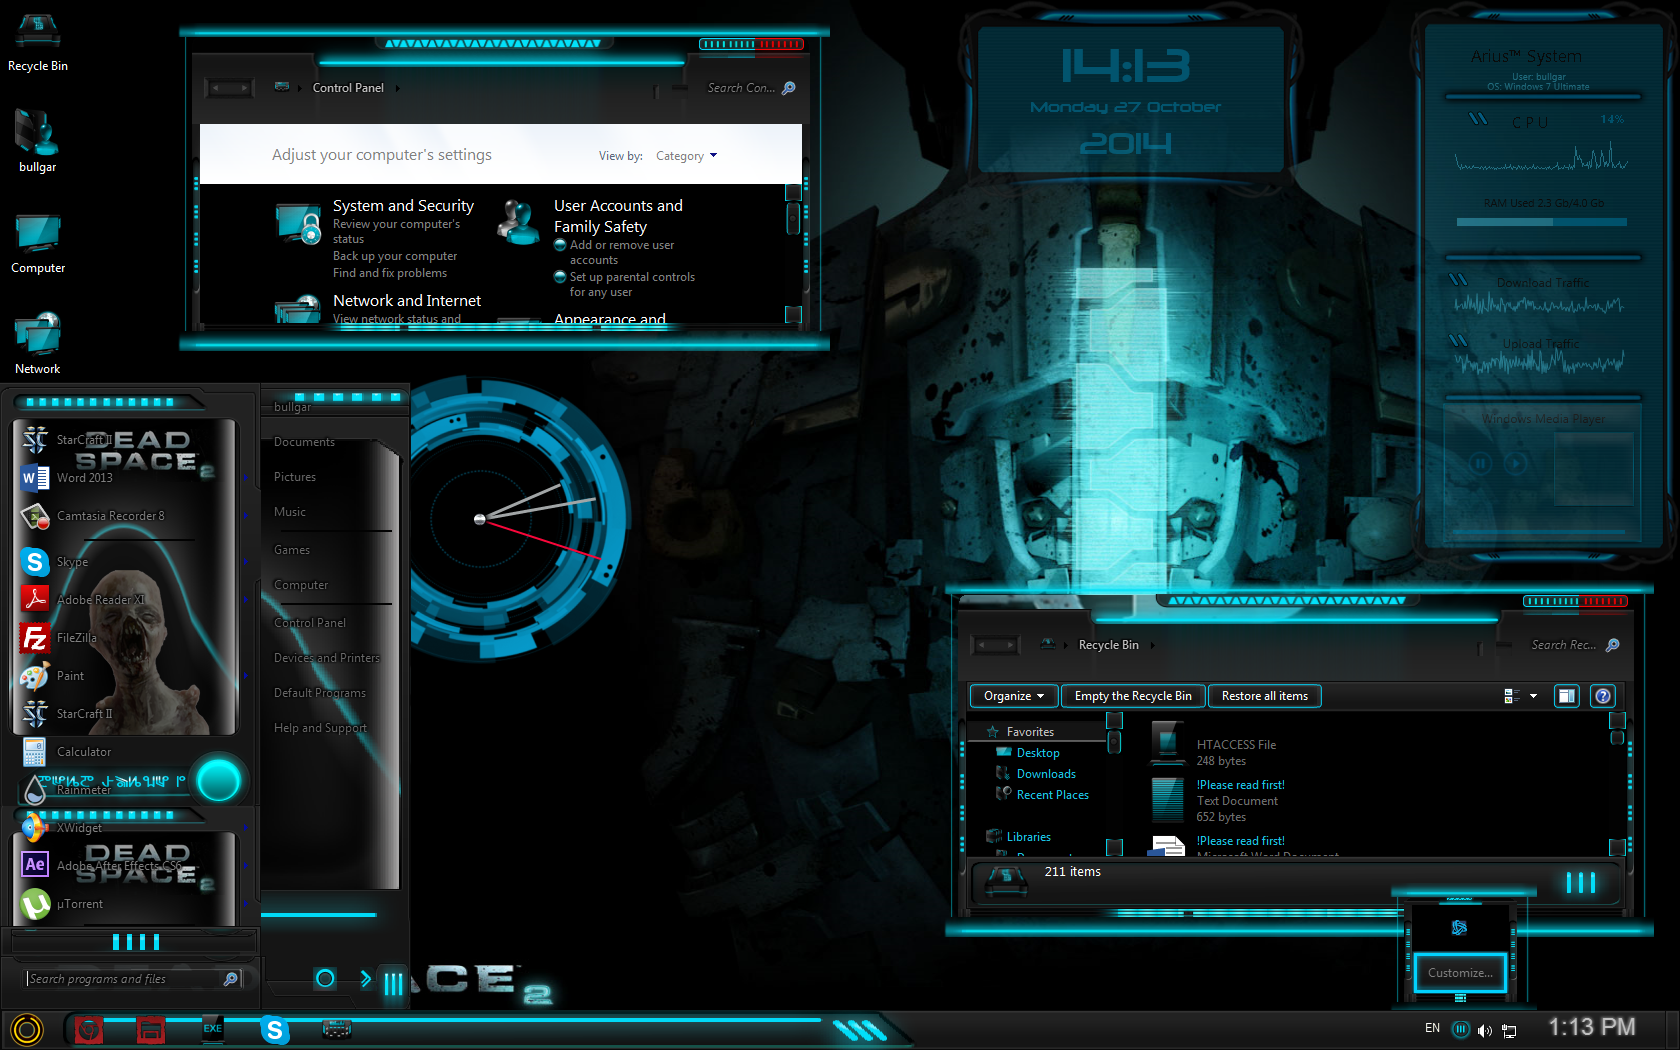 My Dead Space Desktop | Dead Space Wiki | FANDOM powered by Wikia